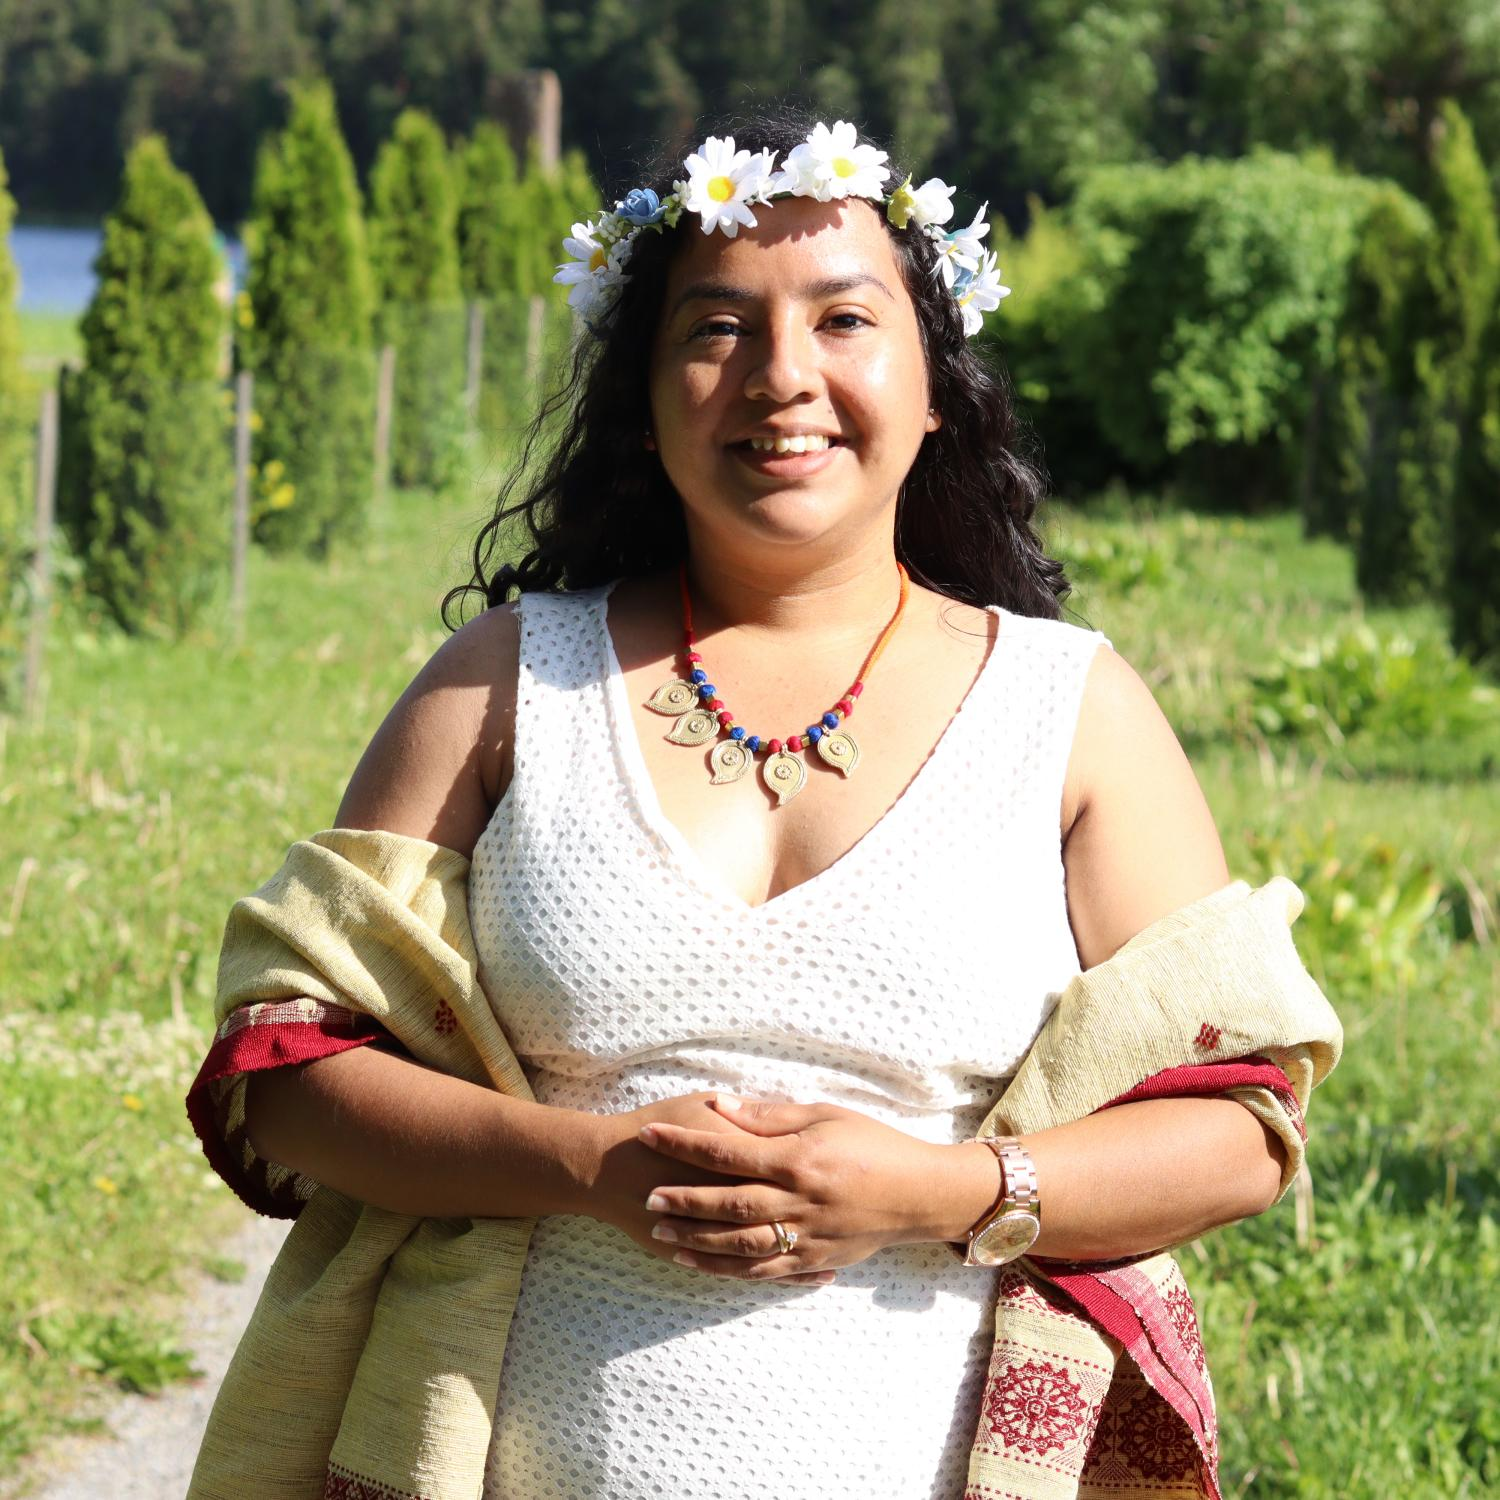 Woman in a white dress standing on a path in a green park wearing a light yellow shawl with red trim, a necklace small brass leaves and white flower wreath on her head